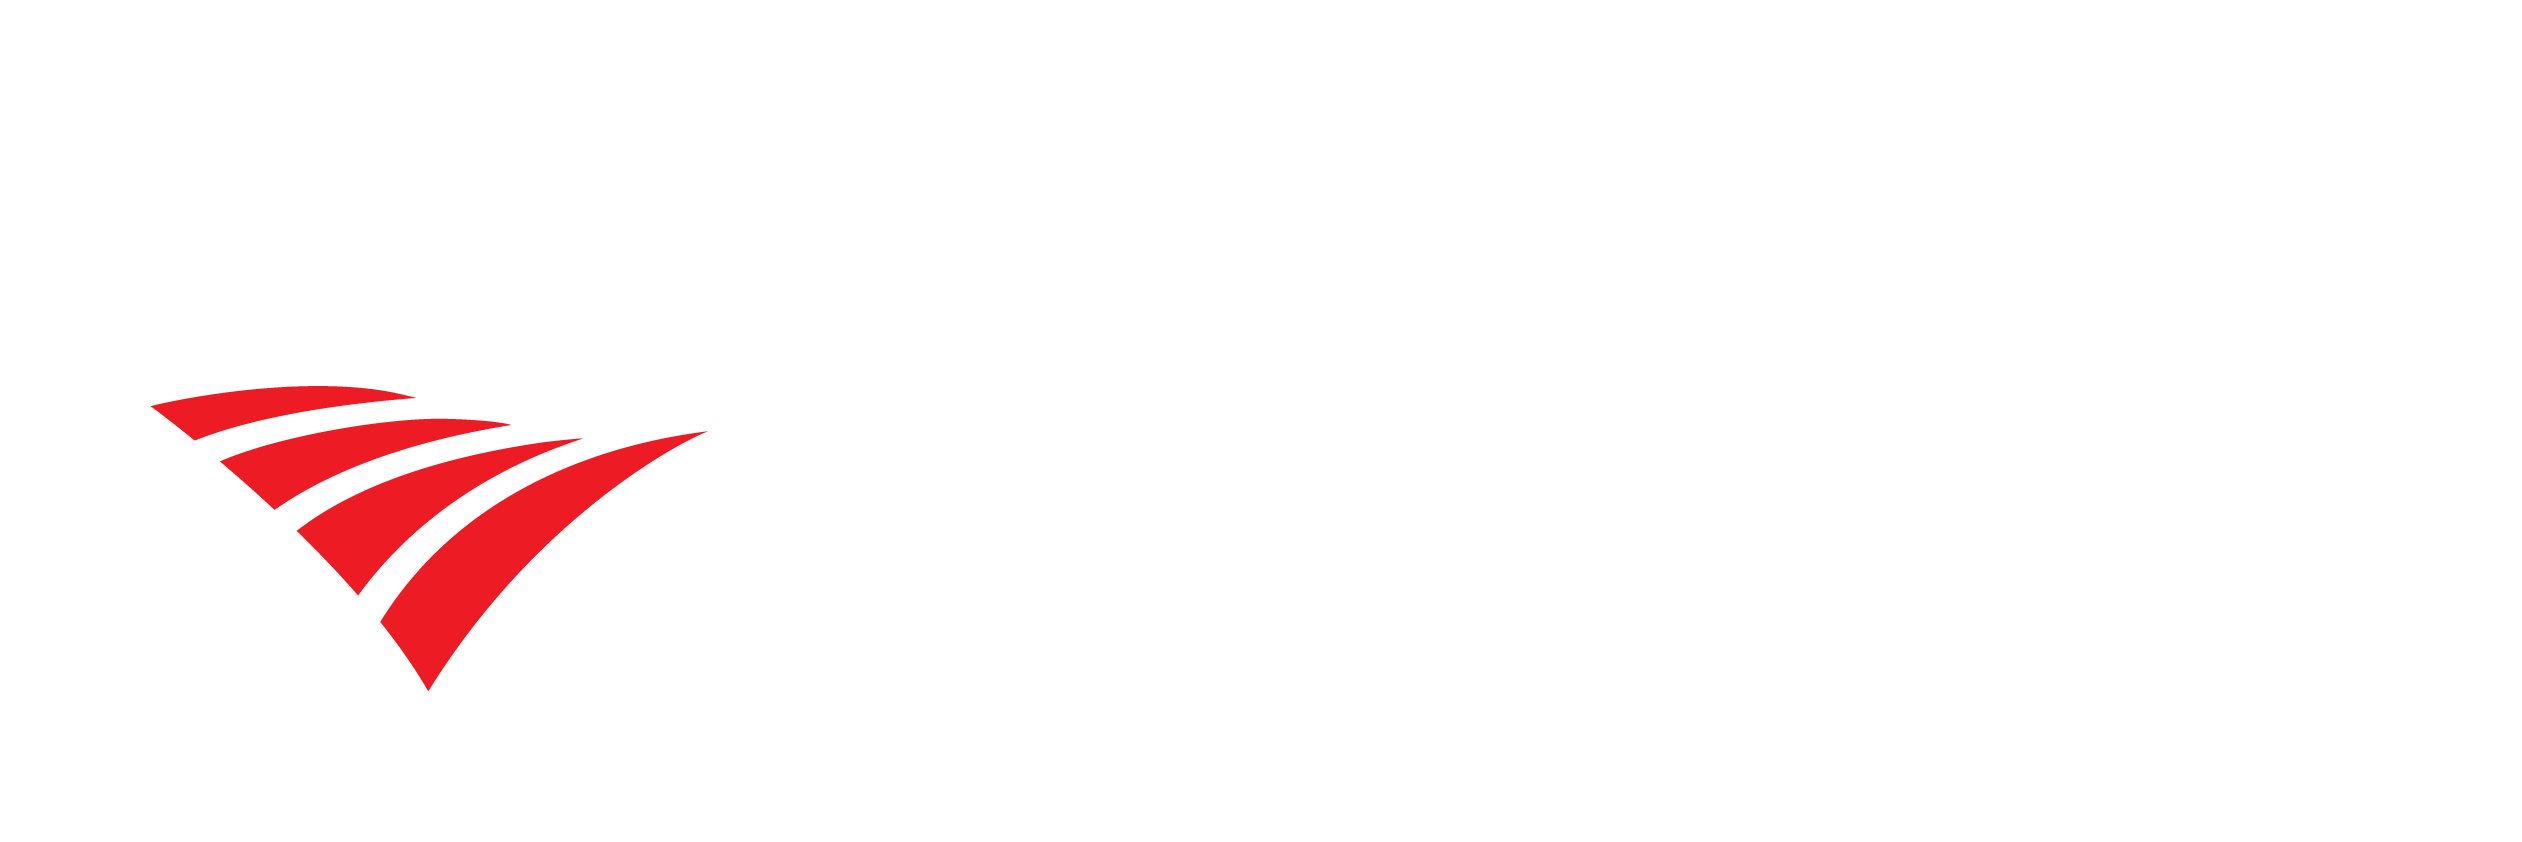 Frasers Footer Logo